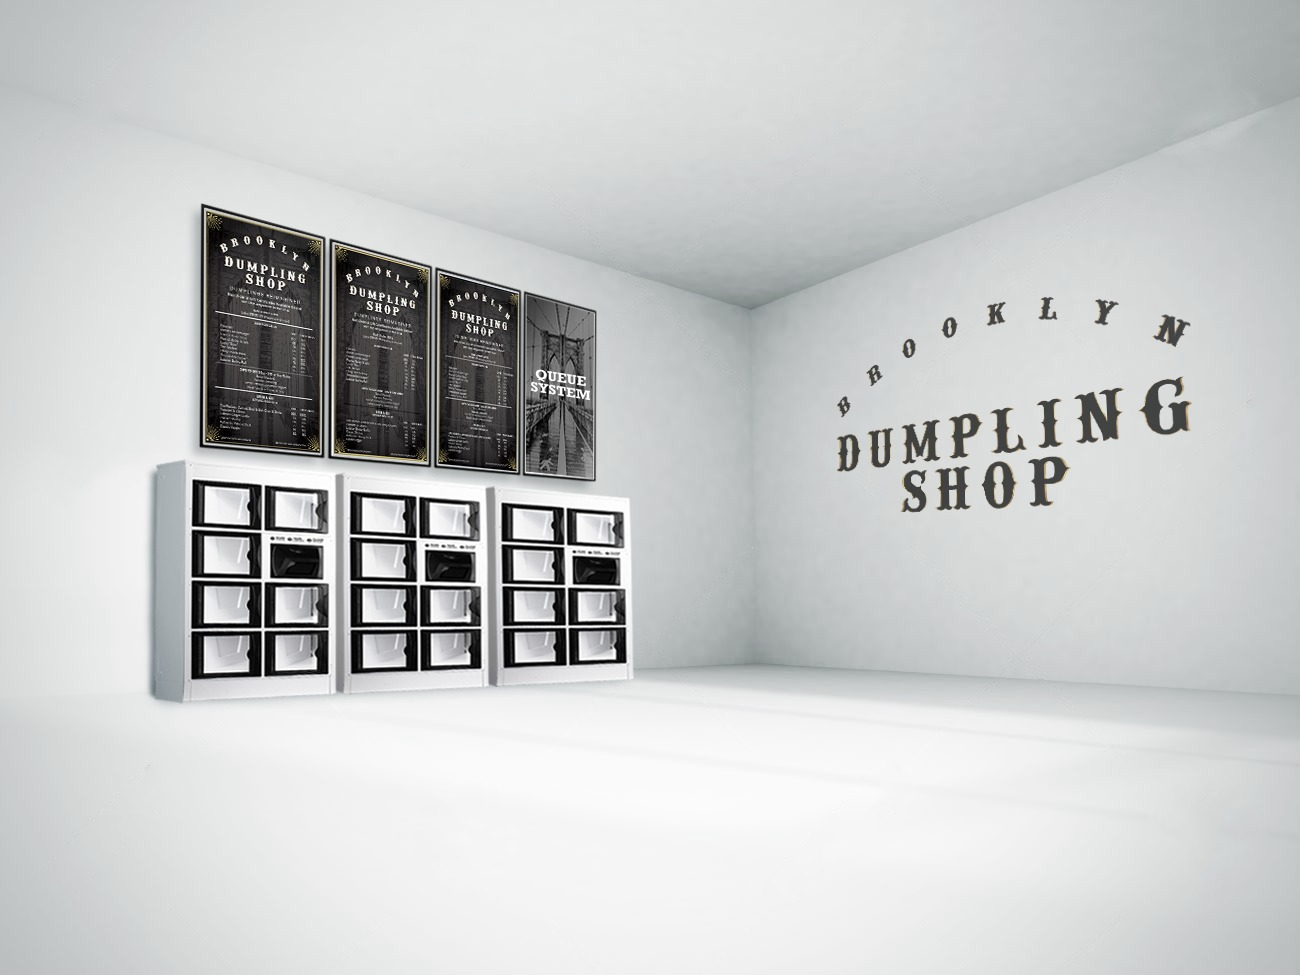 A rendering which shows stacks of glass boxes with menu boards above them